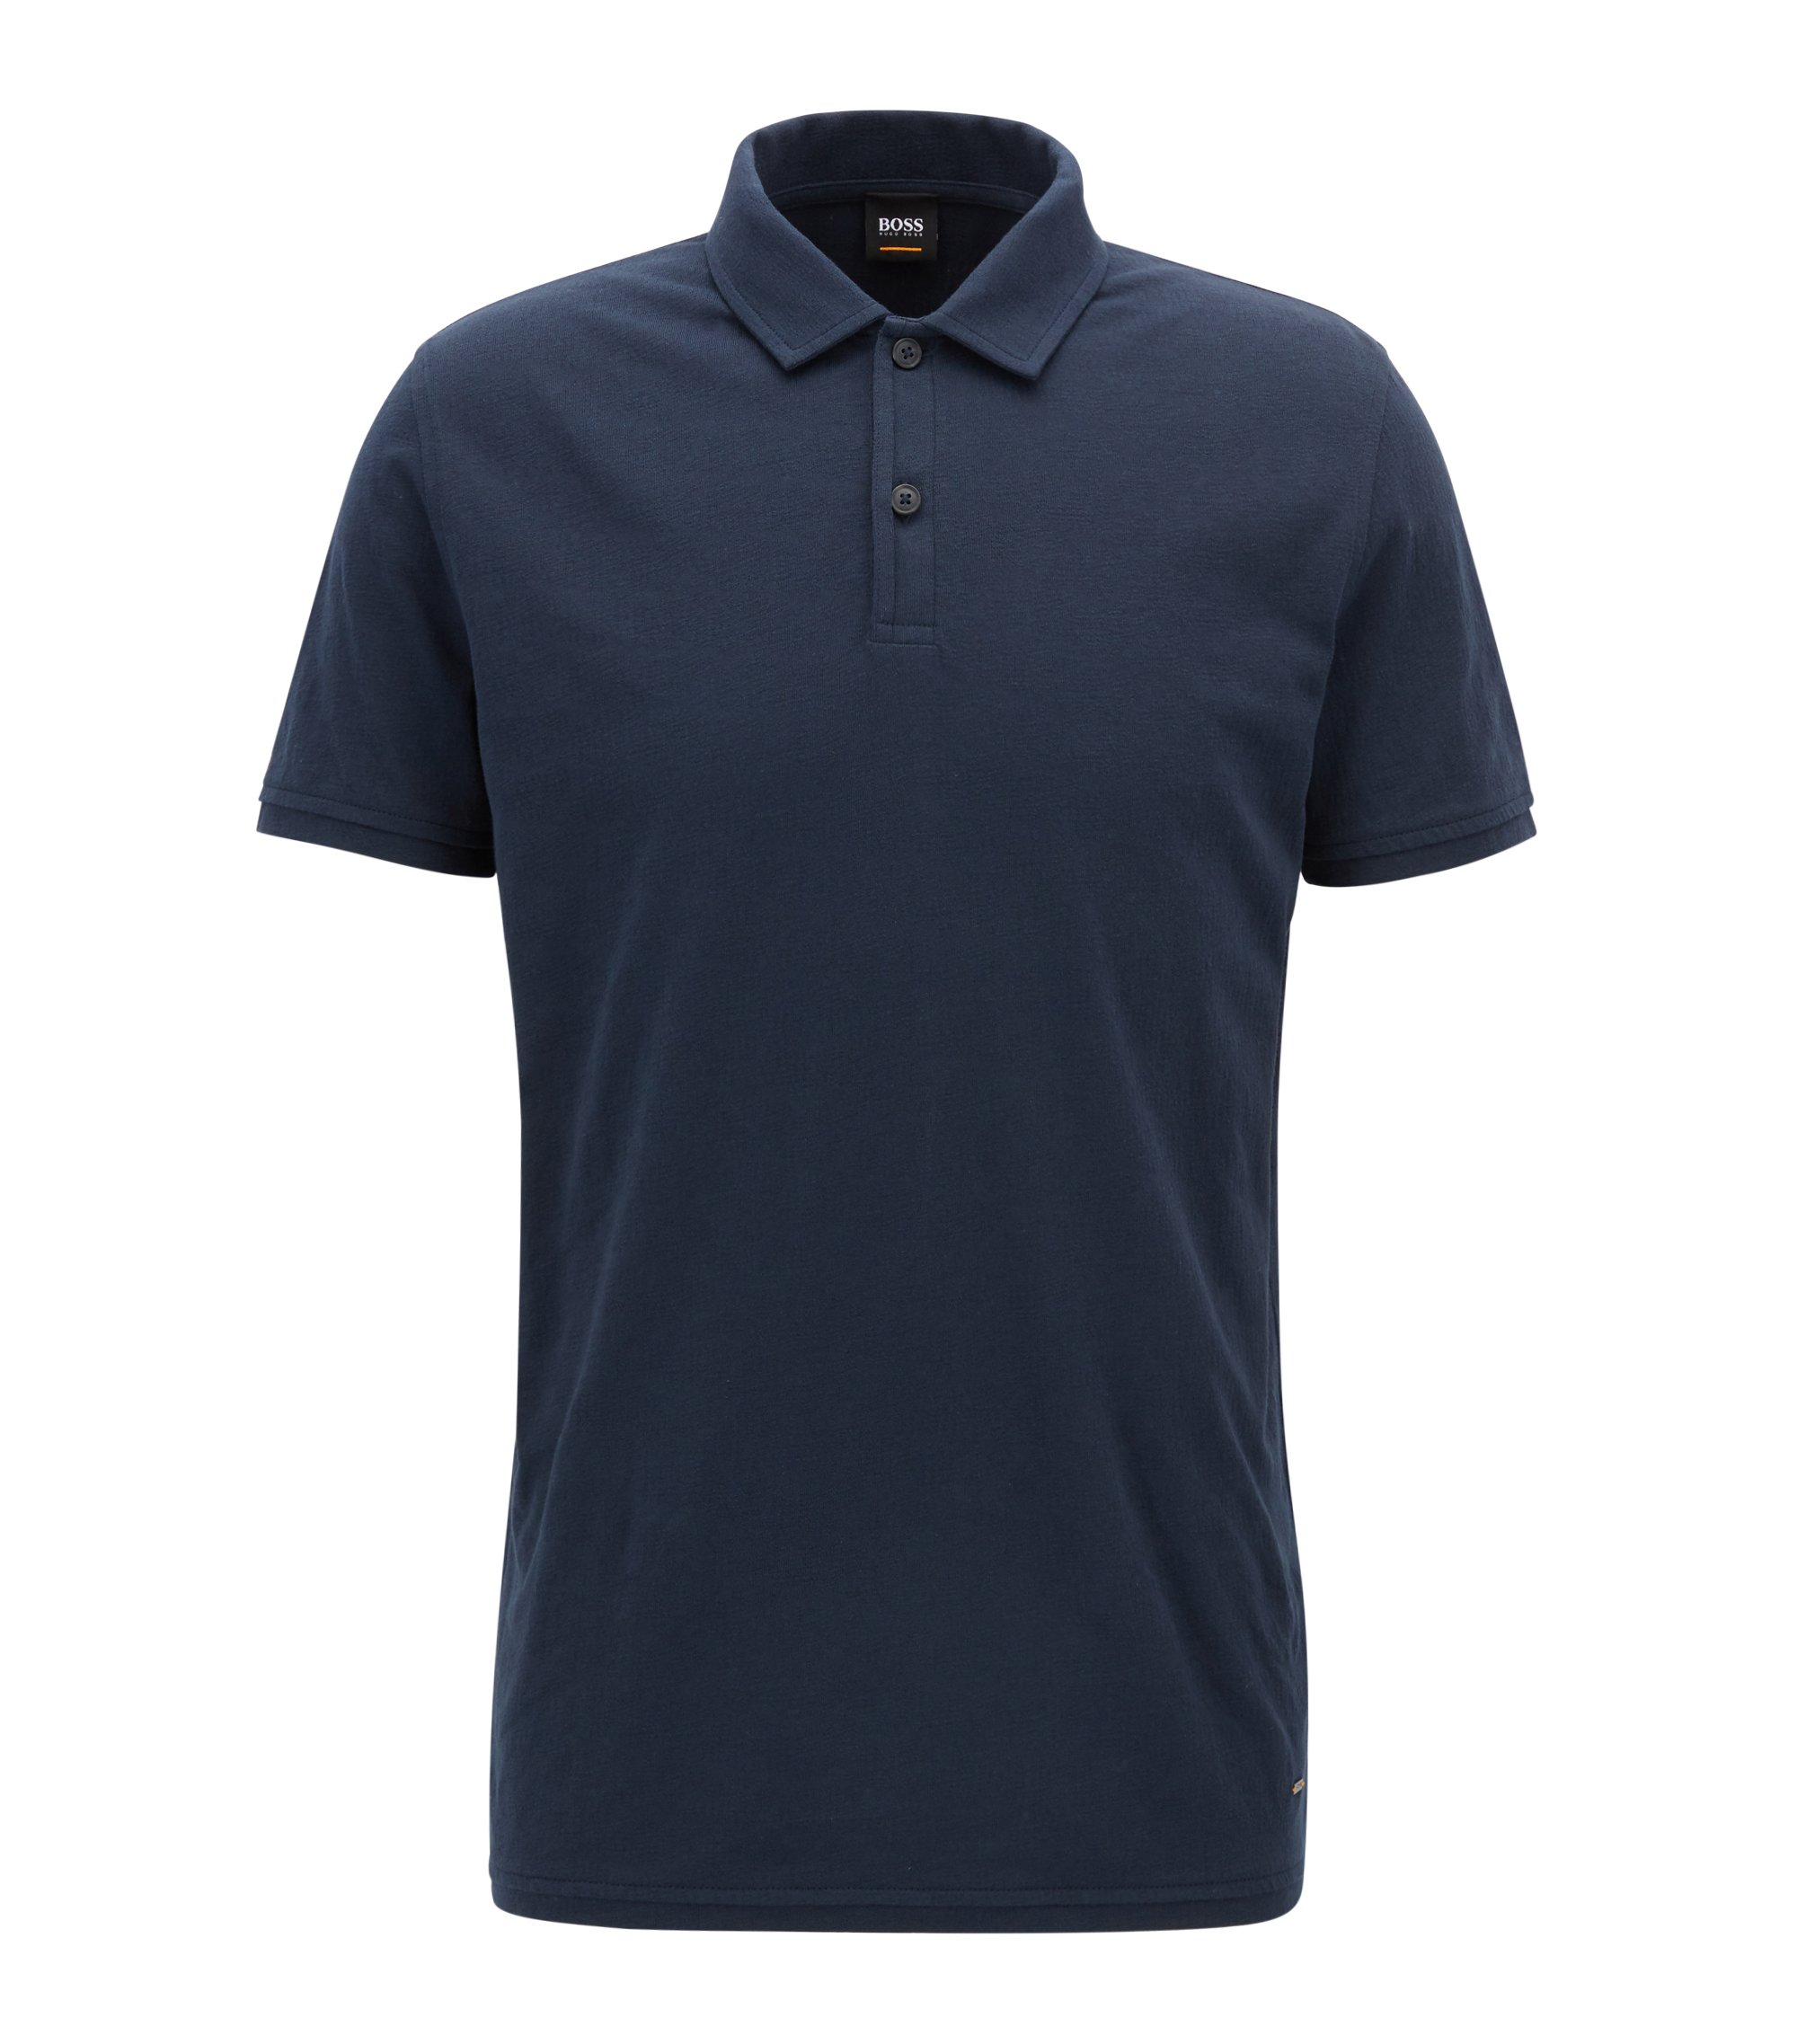 Regular-fit polo shirt in cotton jacquard jersey, Dark Blue